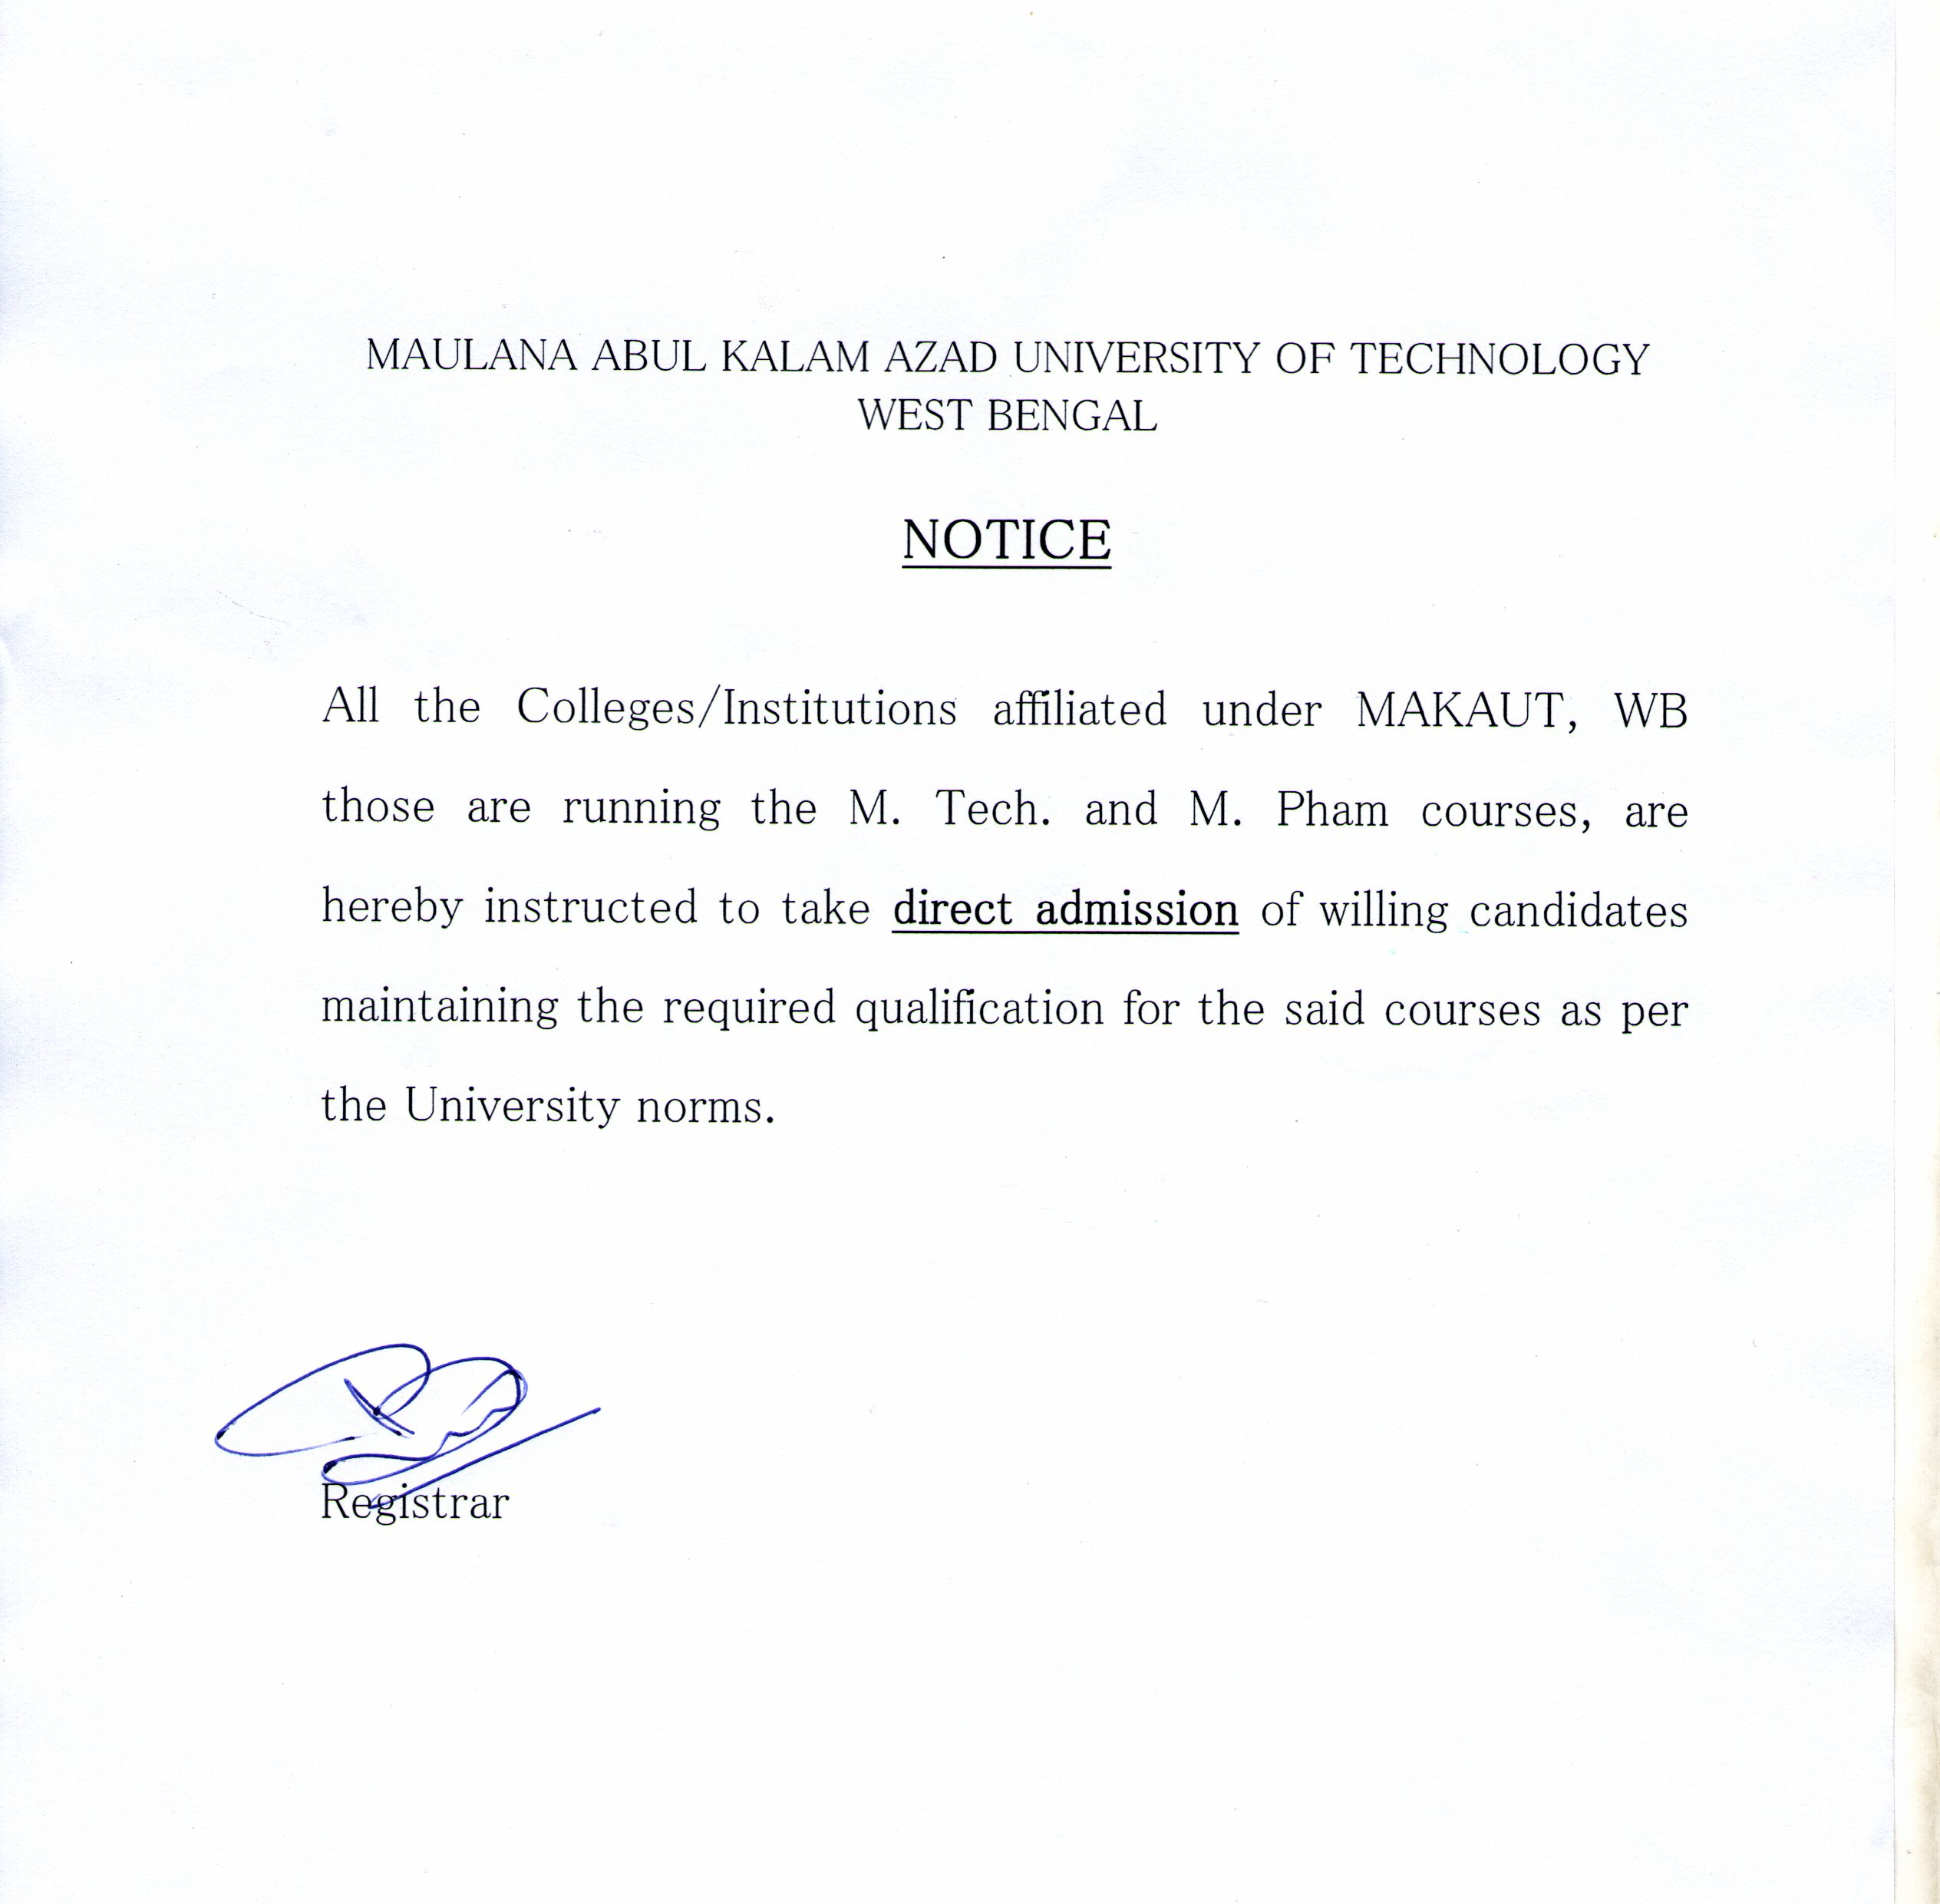 Maulana abul kalam azad university of technology west bengal notice to principaldirector of affiliated colleges offering mtechmpharm regarding direct admissionfor the year 2016 17 spiritdancerdesigns Choice Image